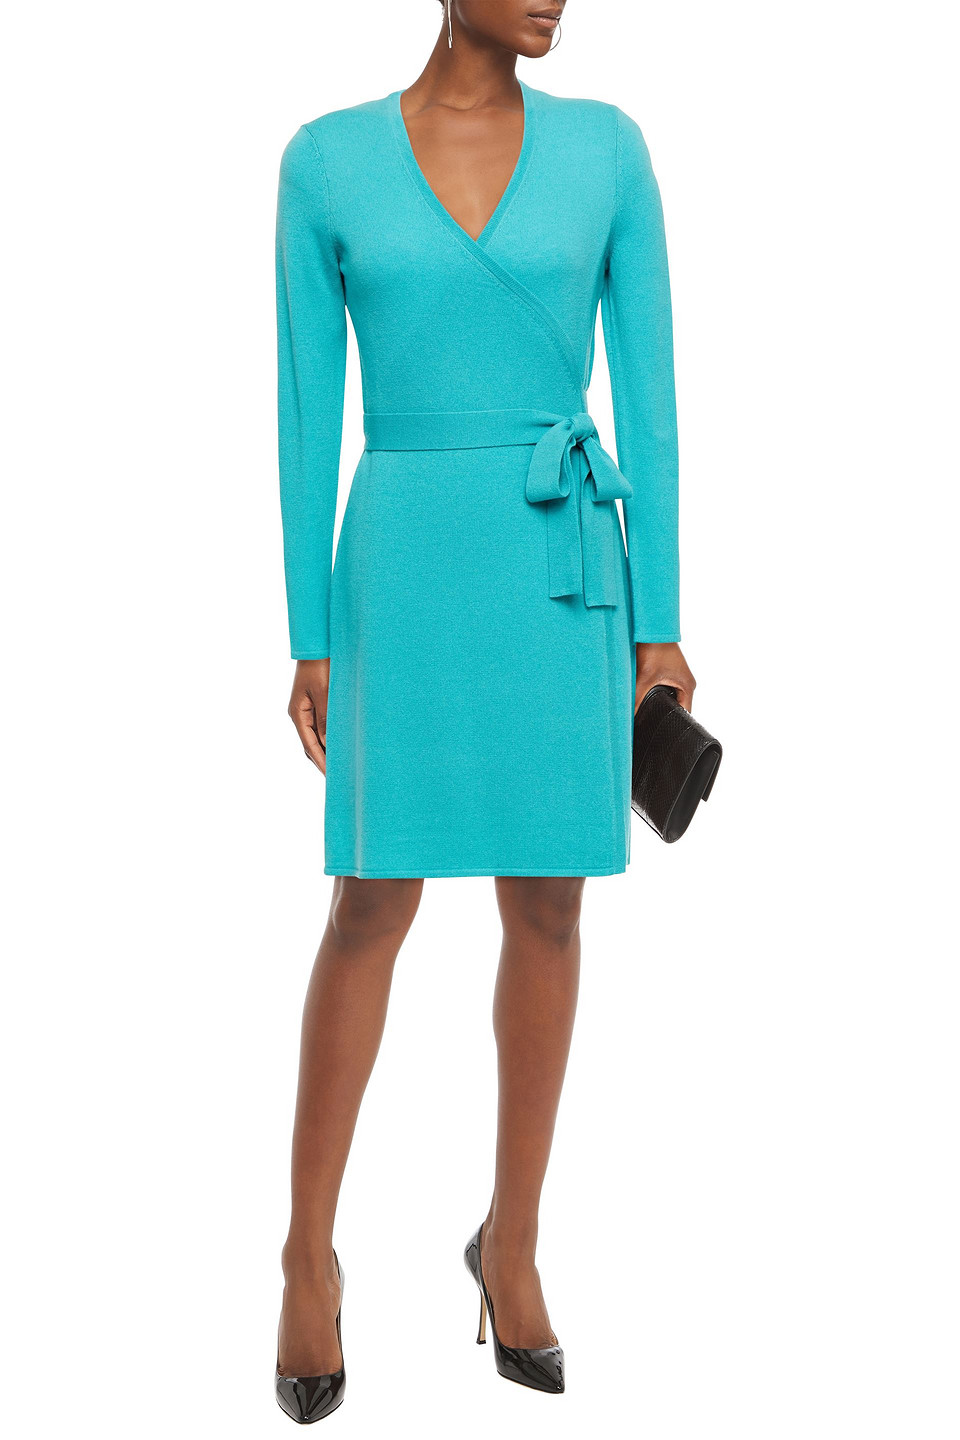 Diane Von Furstenberg | Diane Von Furstenberg Woman Wool And Cashmere-blend Mini Wrap Dress Turquoise | Clouty